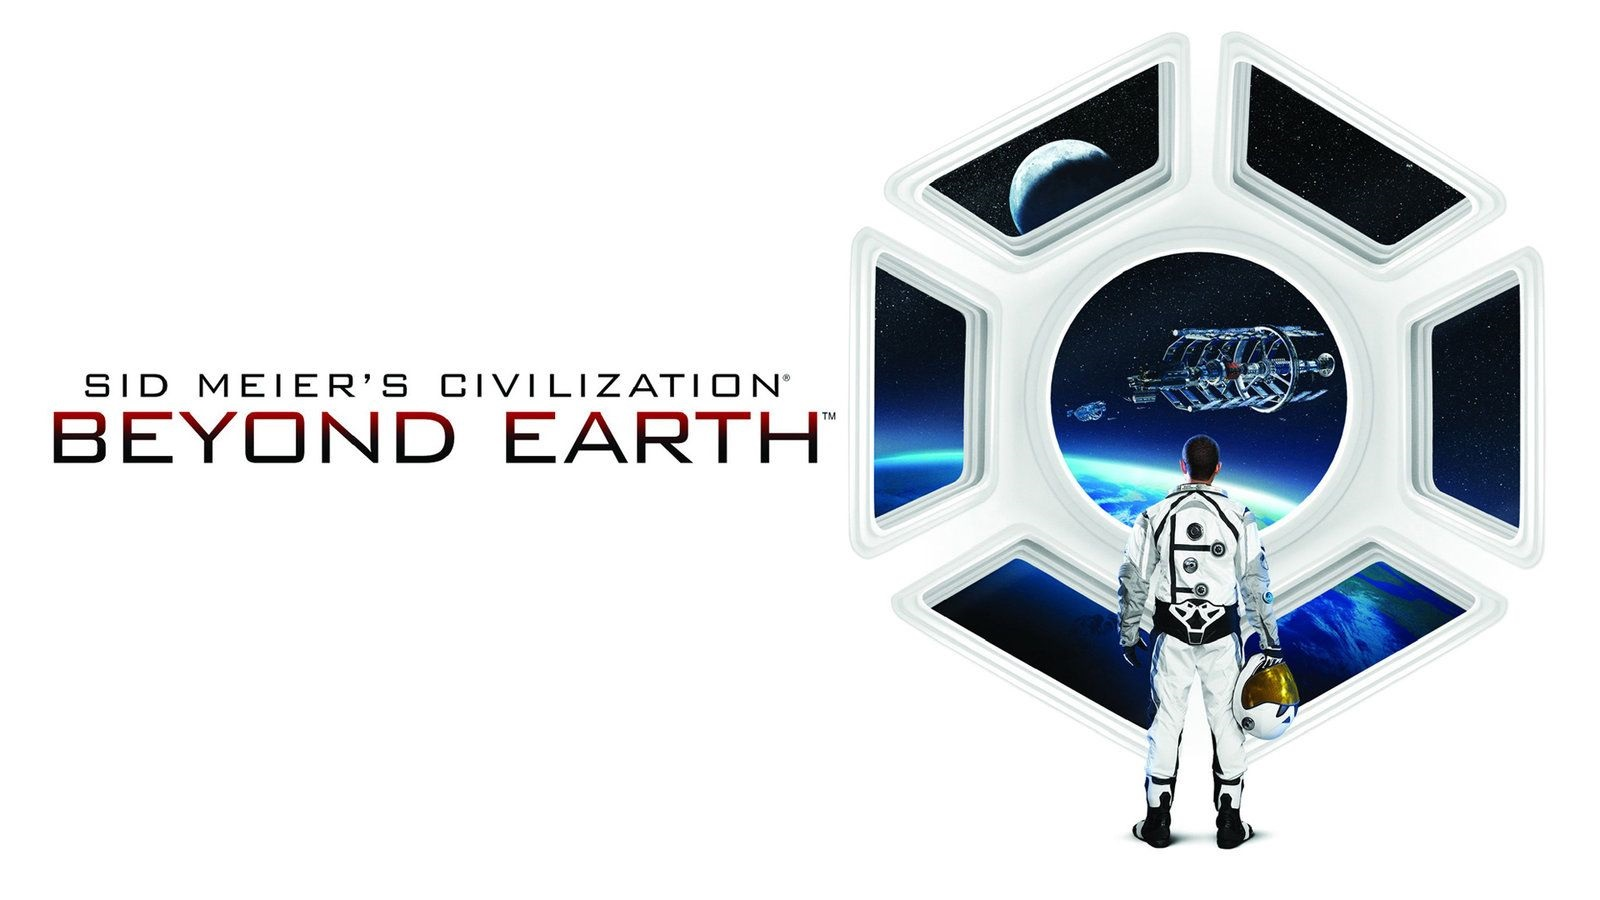 Sid Meier's Civilization: Beyond Earth telecharger gratuit de PC et Torrent